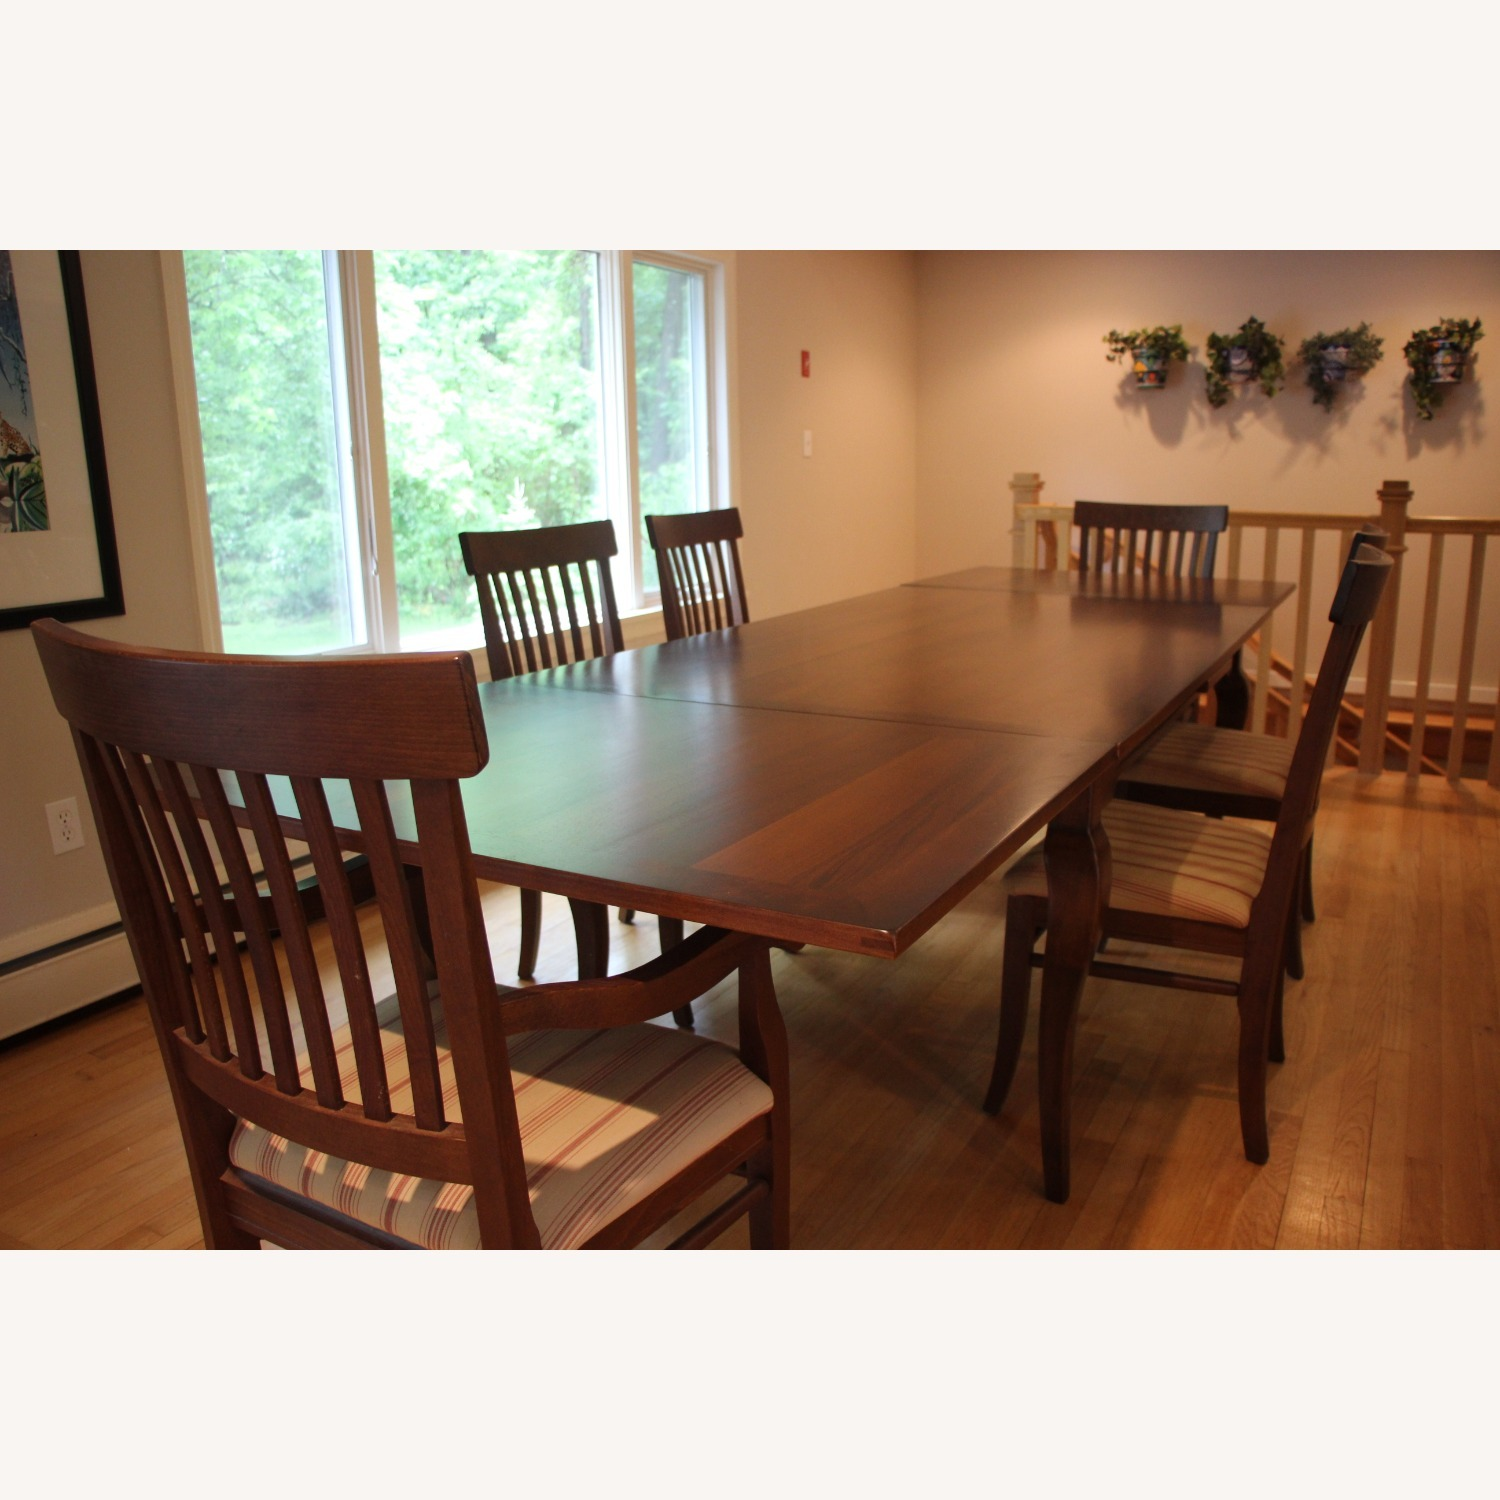 Arhaus Maple Dining Table and Chairs - image-13